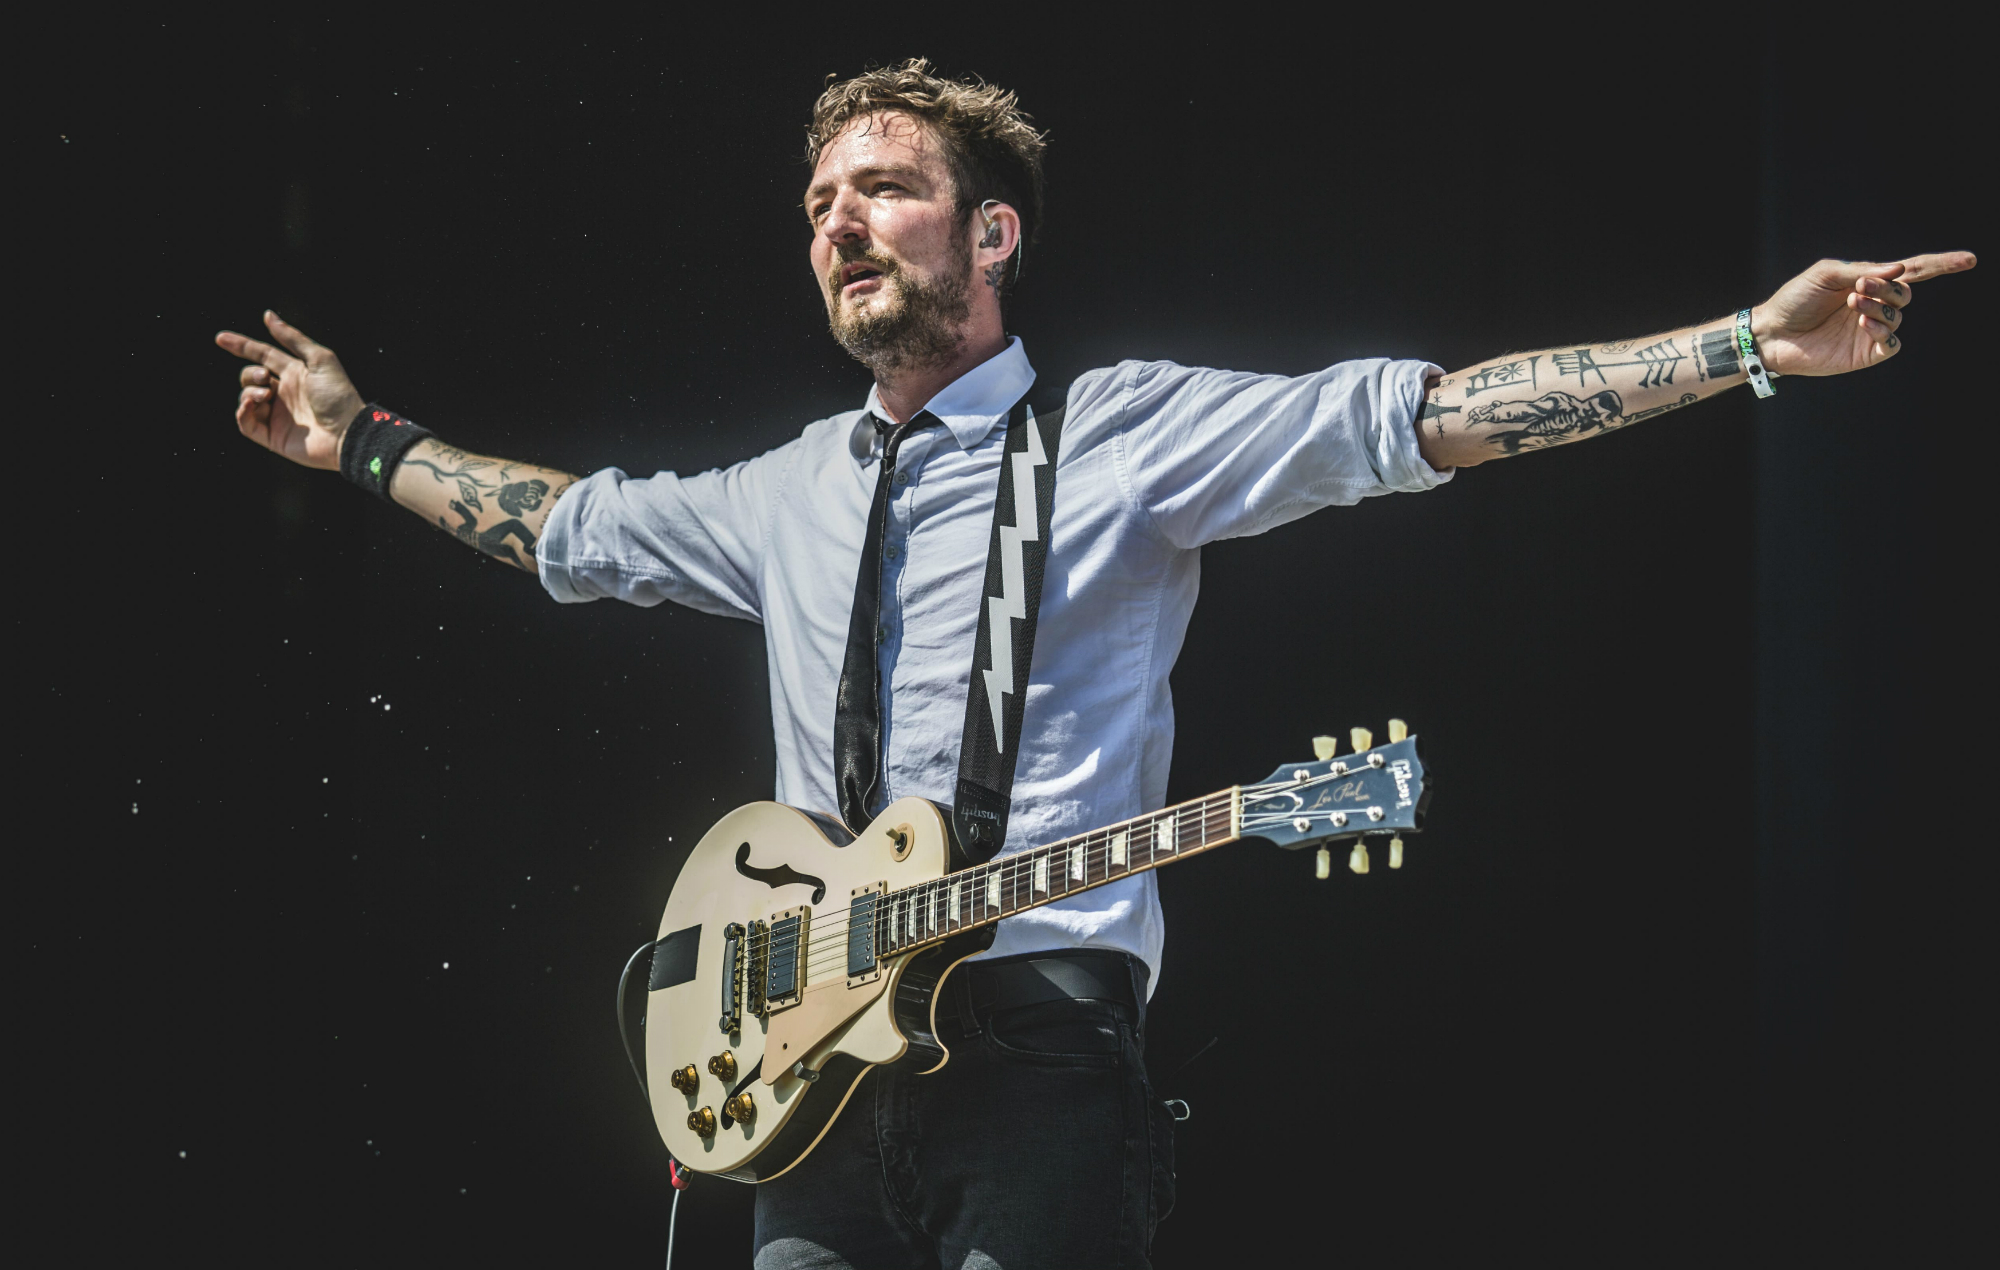 Frank Turner announces new album 'No Man's Land' with first